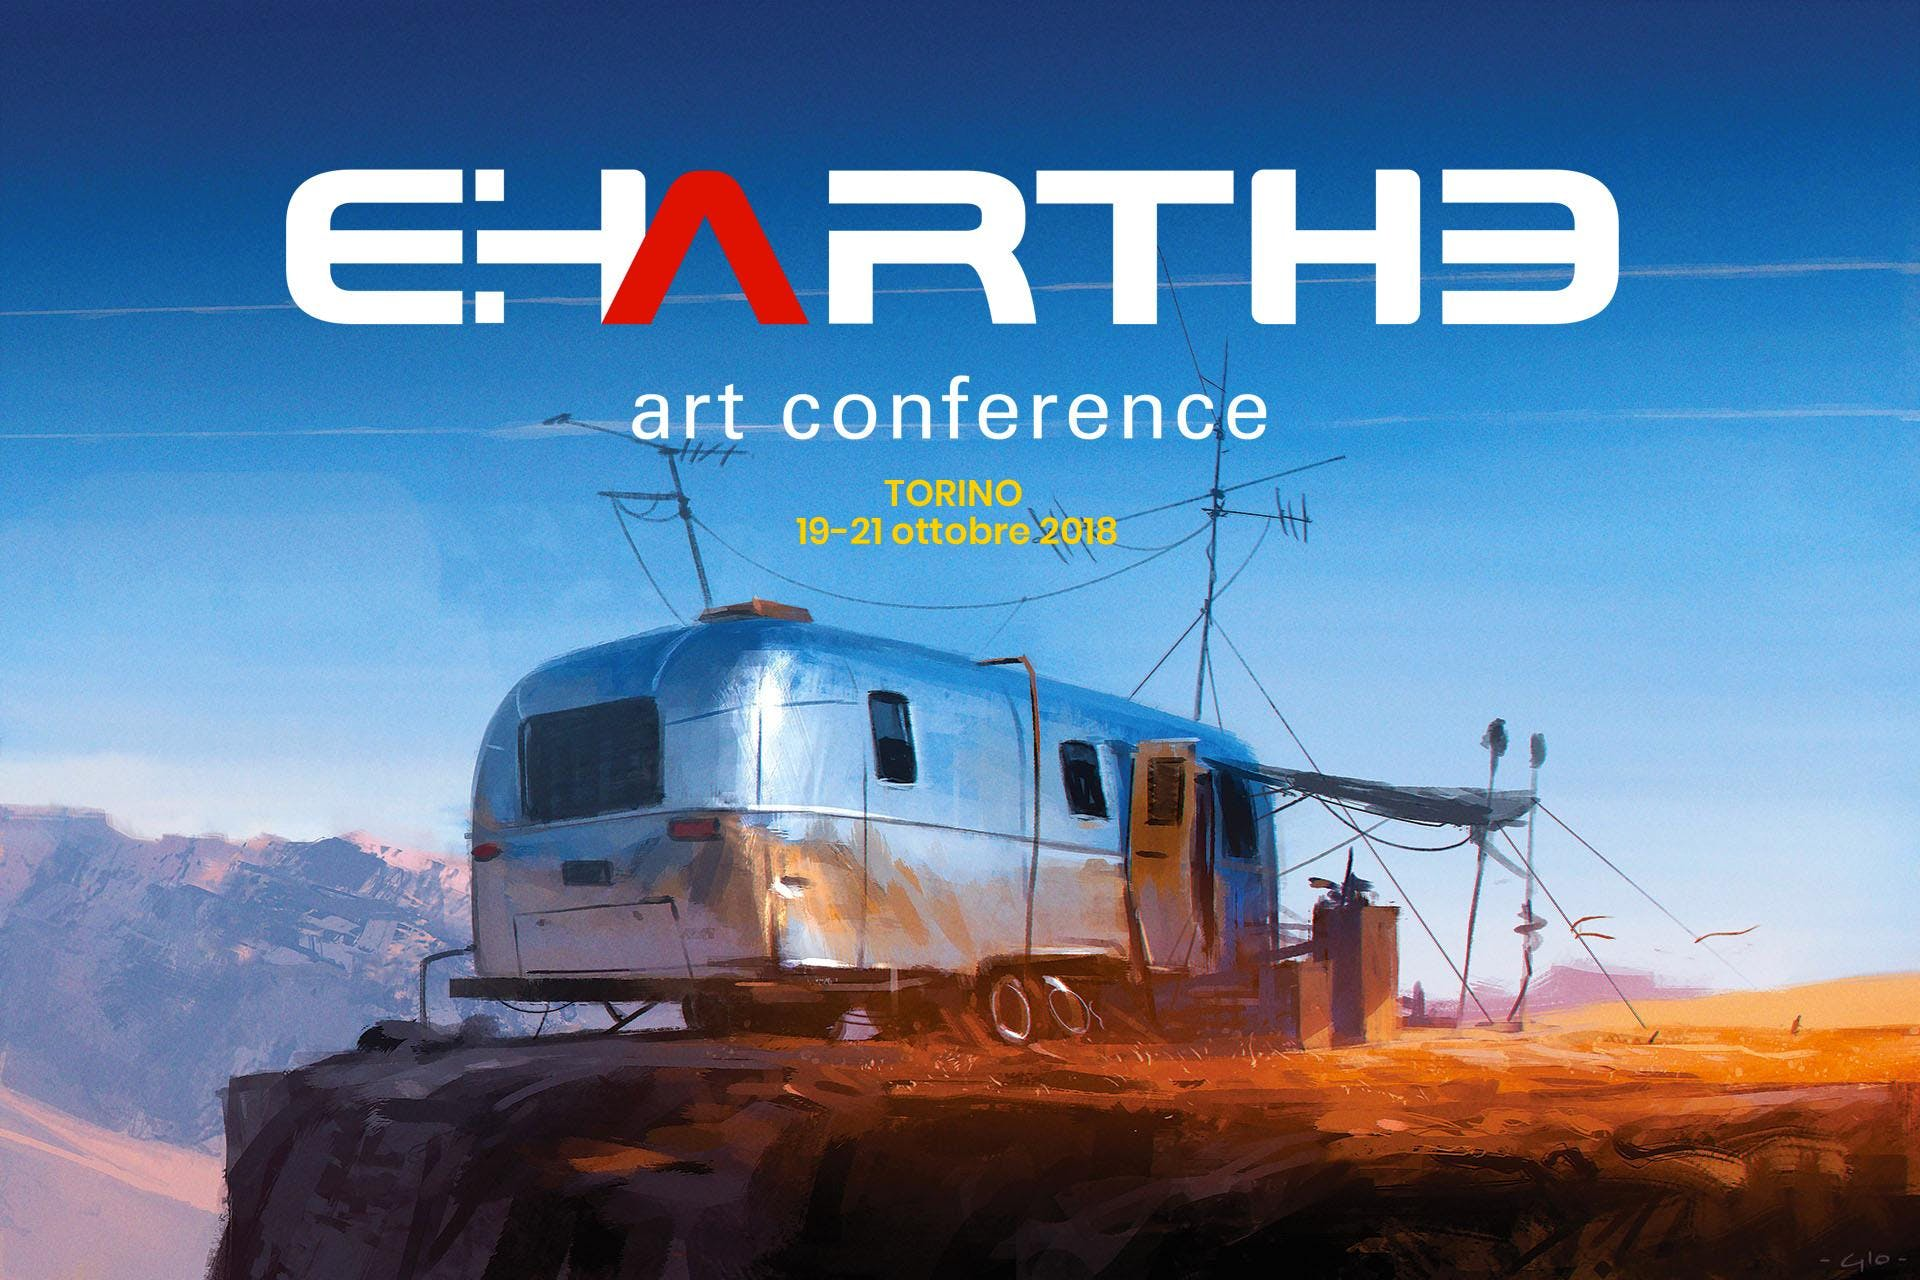 EHARTHE: Art Conference